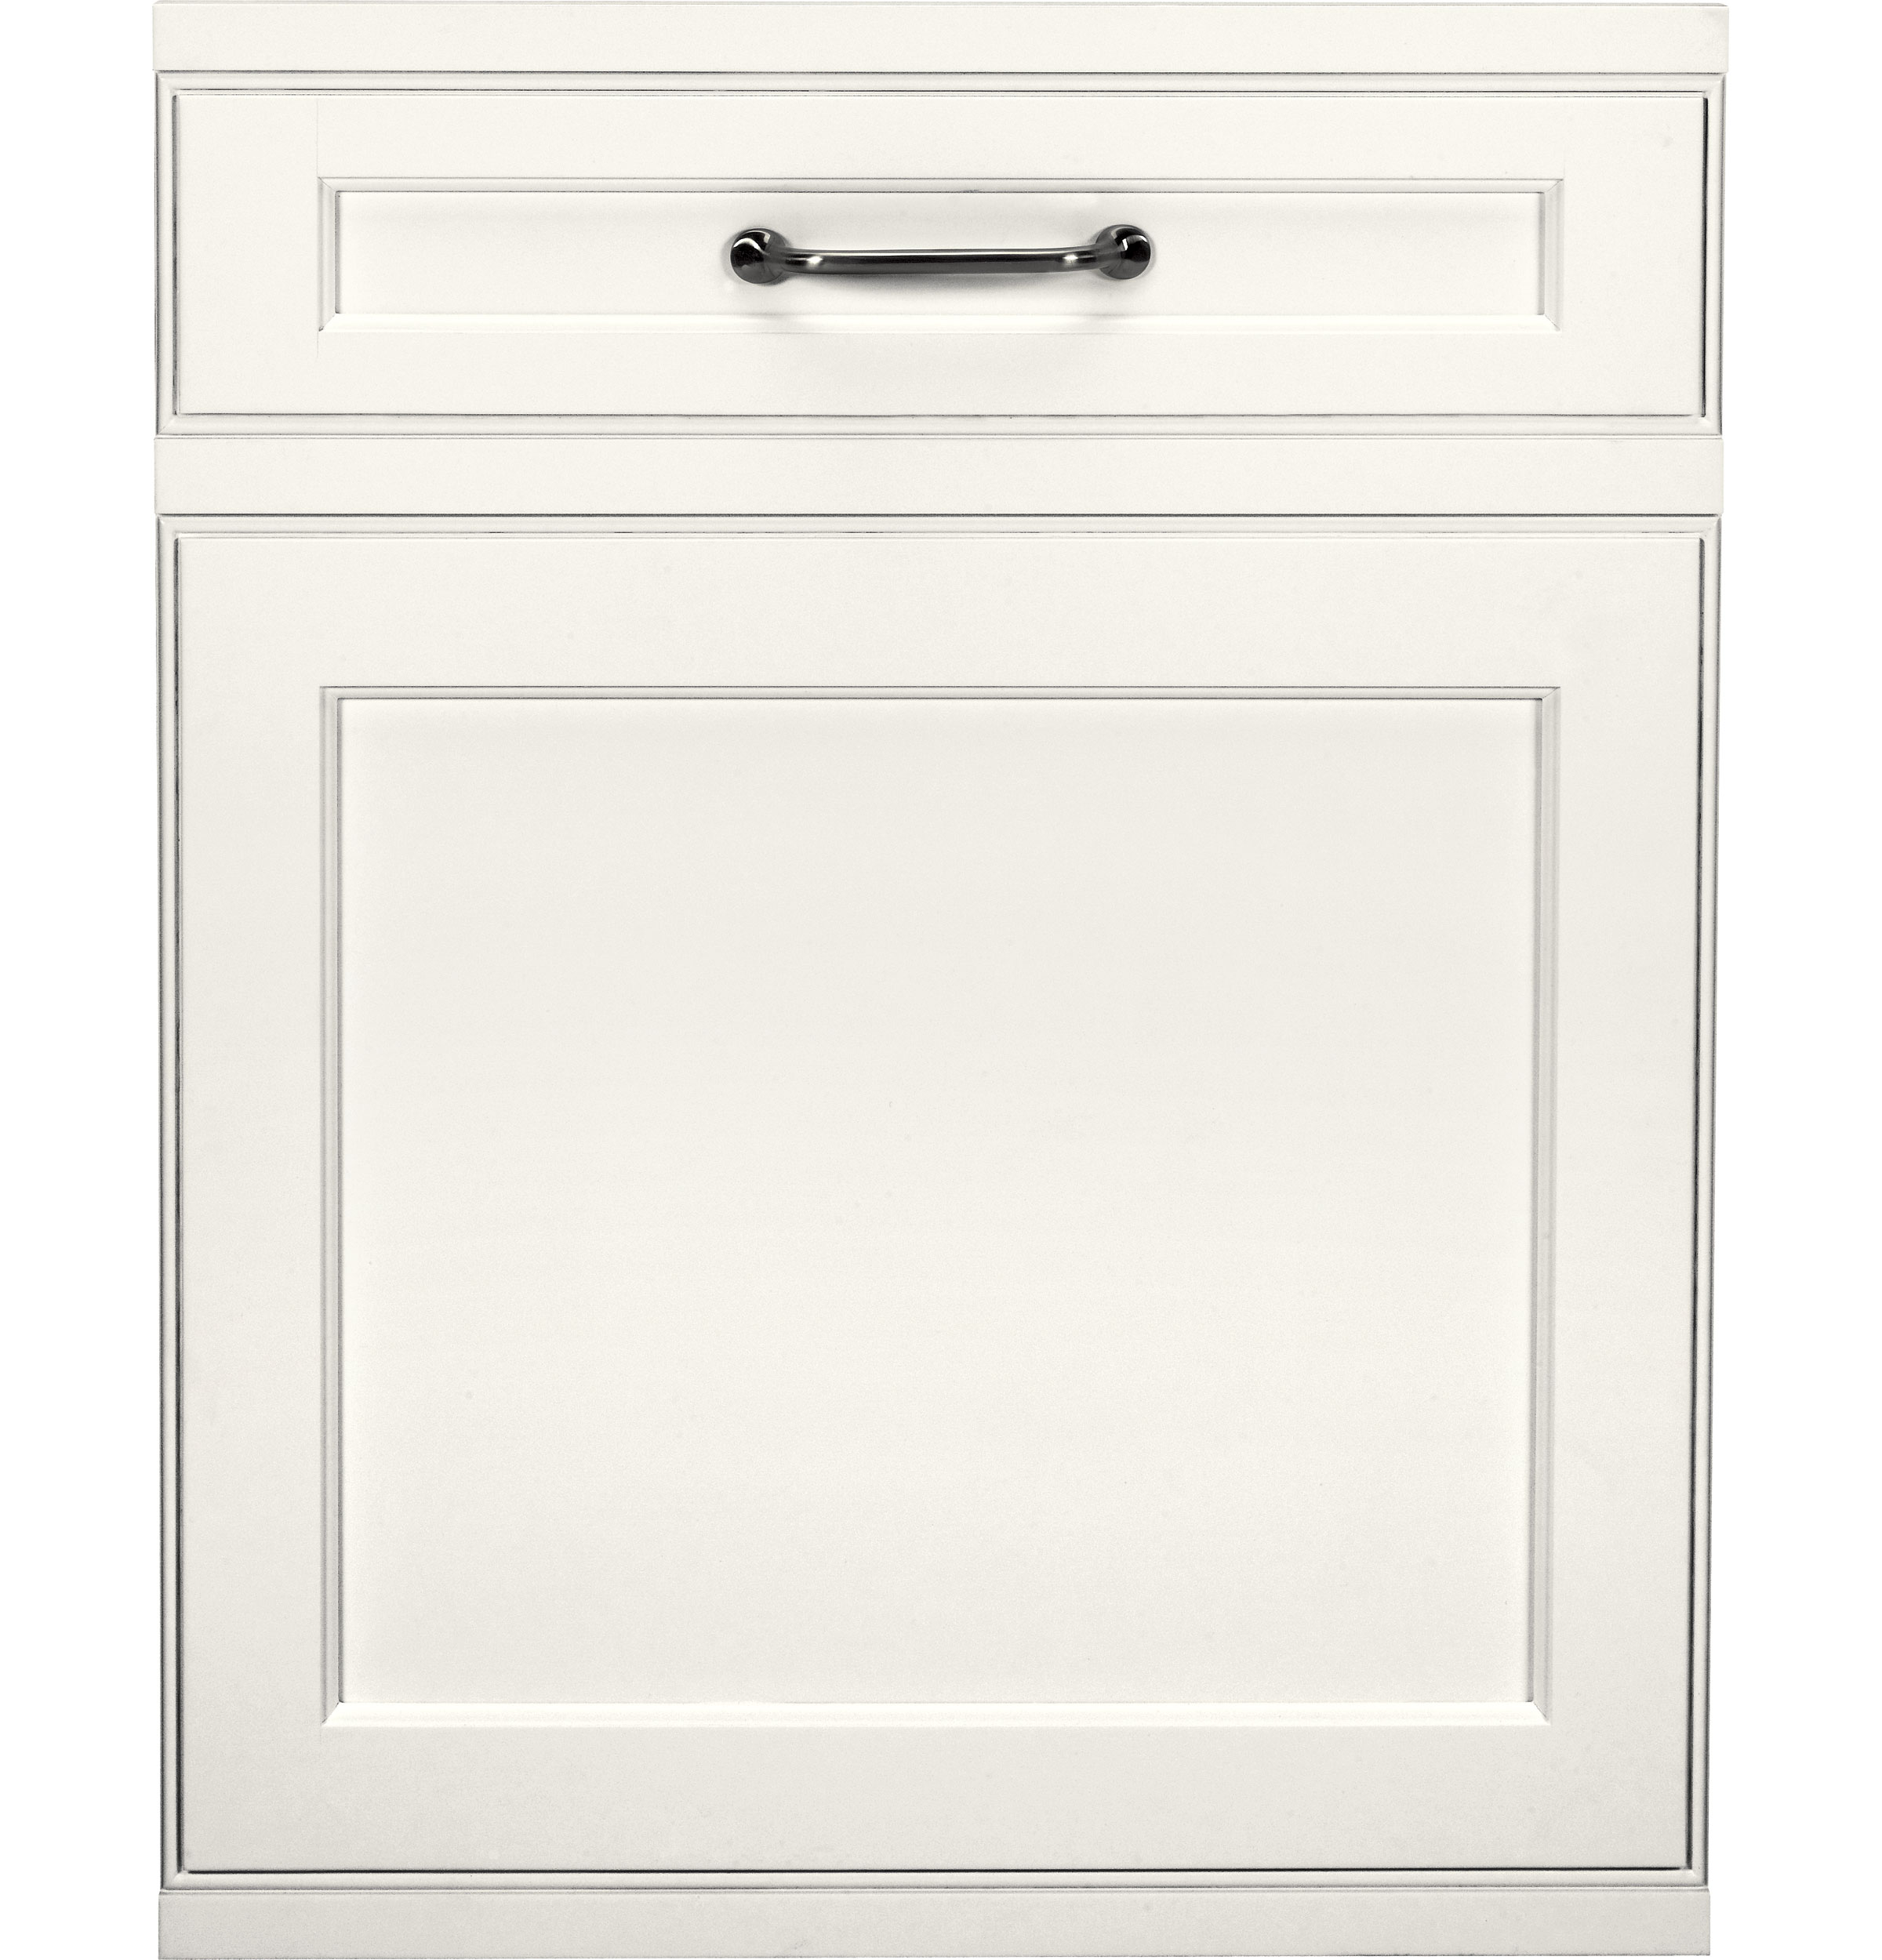 Monogram Dishwasher ZDT925SINII in Pannel-Ready color showcased by Corbeil Electro Store